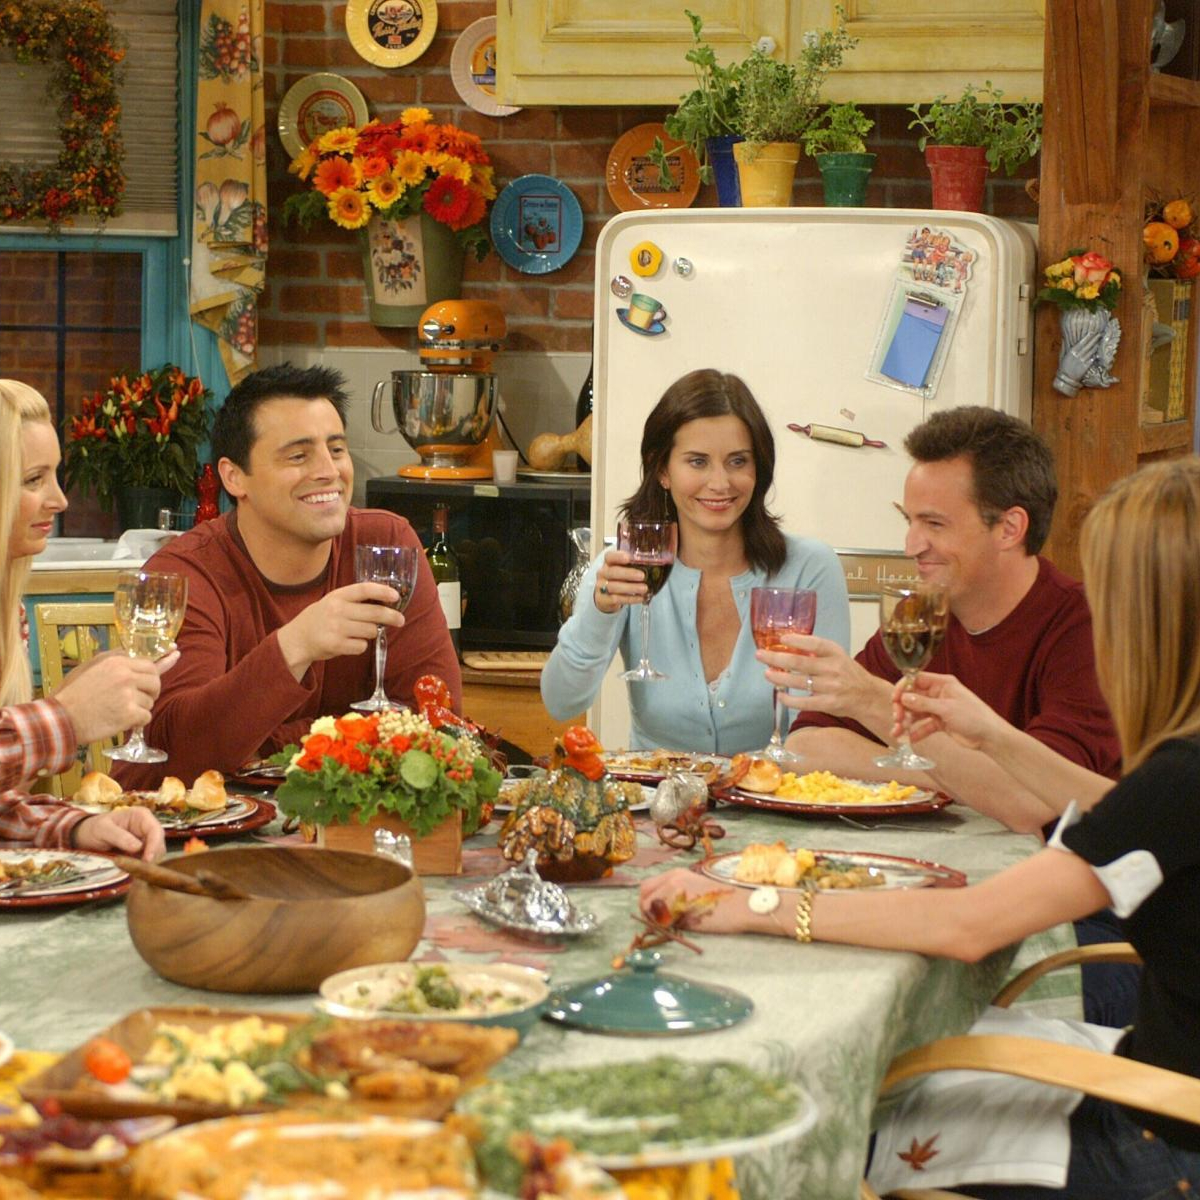 Thanksgiving 2019: FRIENDS Thanksgiving episodes you should rewatch this traditional holiday